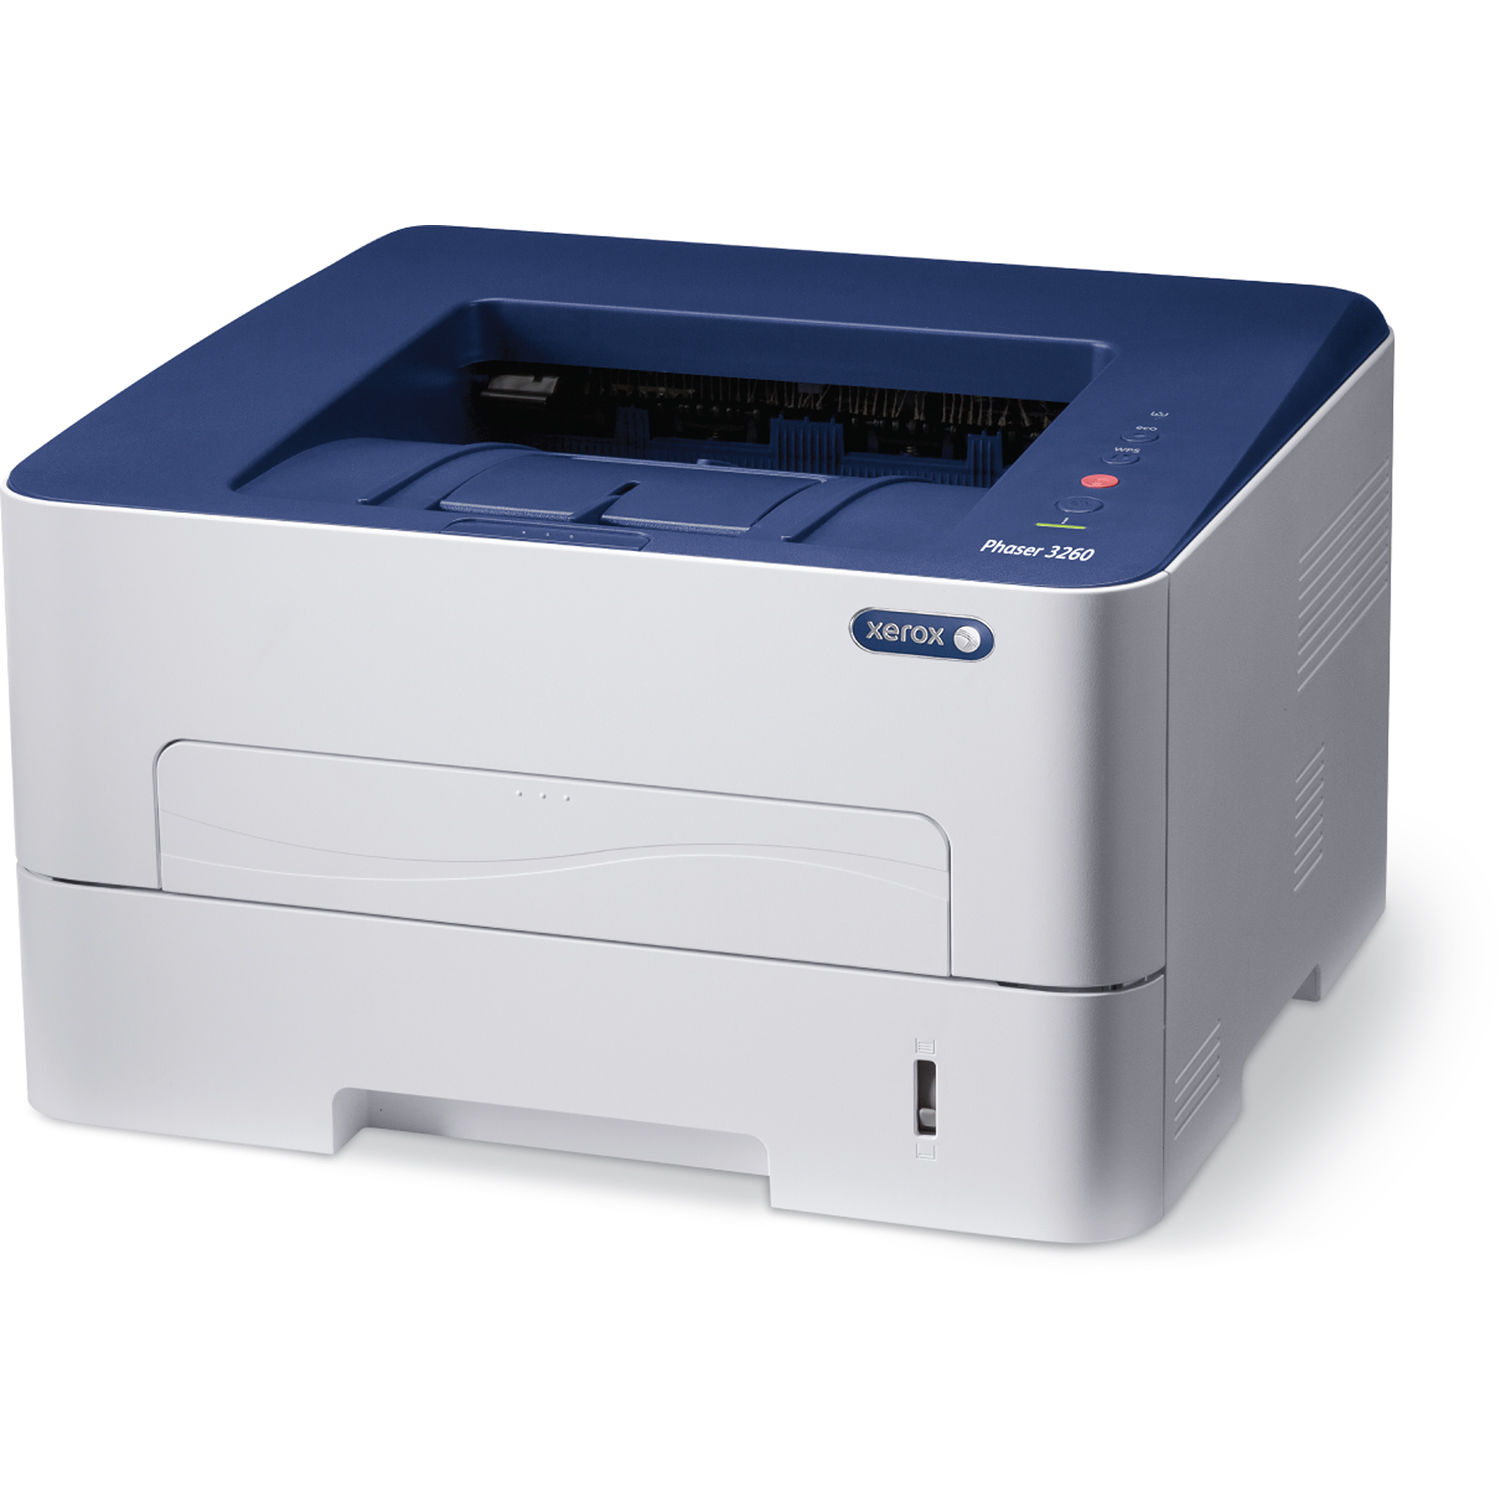 Xerox Phaser 3250 PCL Printer Driver (2019)